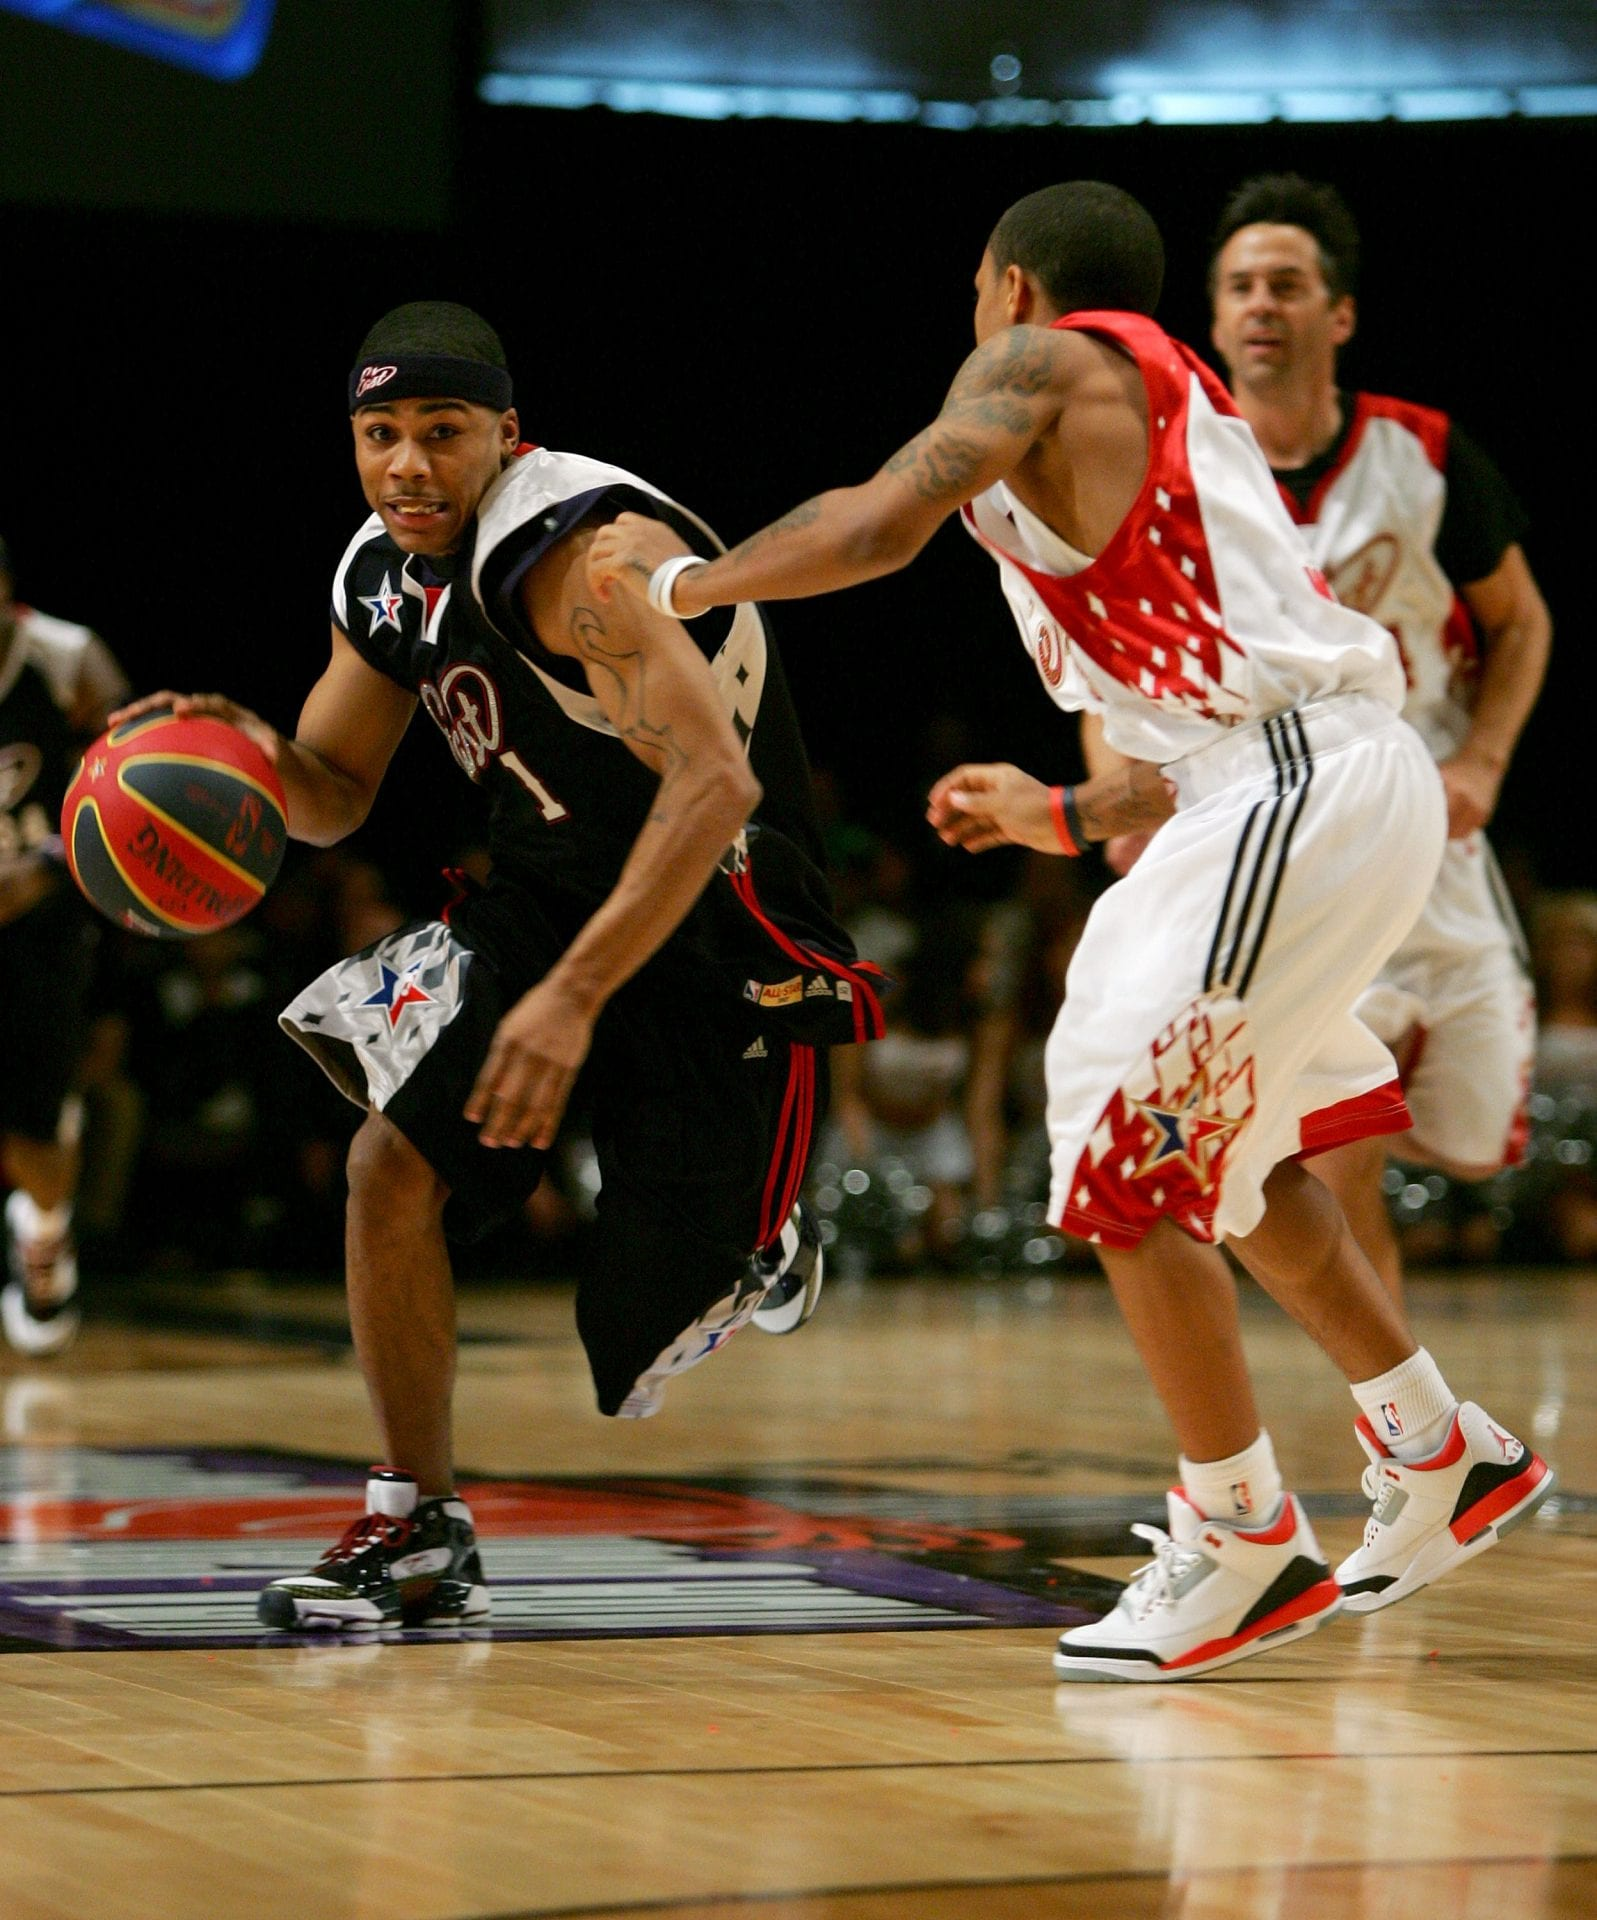 Rapper/east player Nelly drives to the basket against rapper/west player Bow Wow during the McDonald's NBA All-Star Celebrity Game